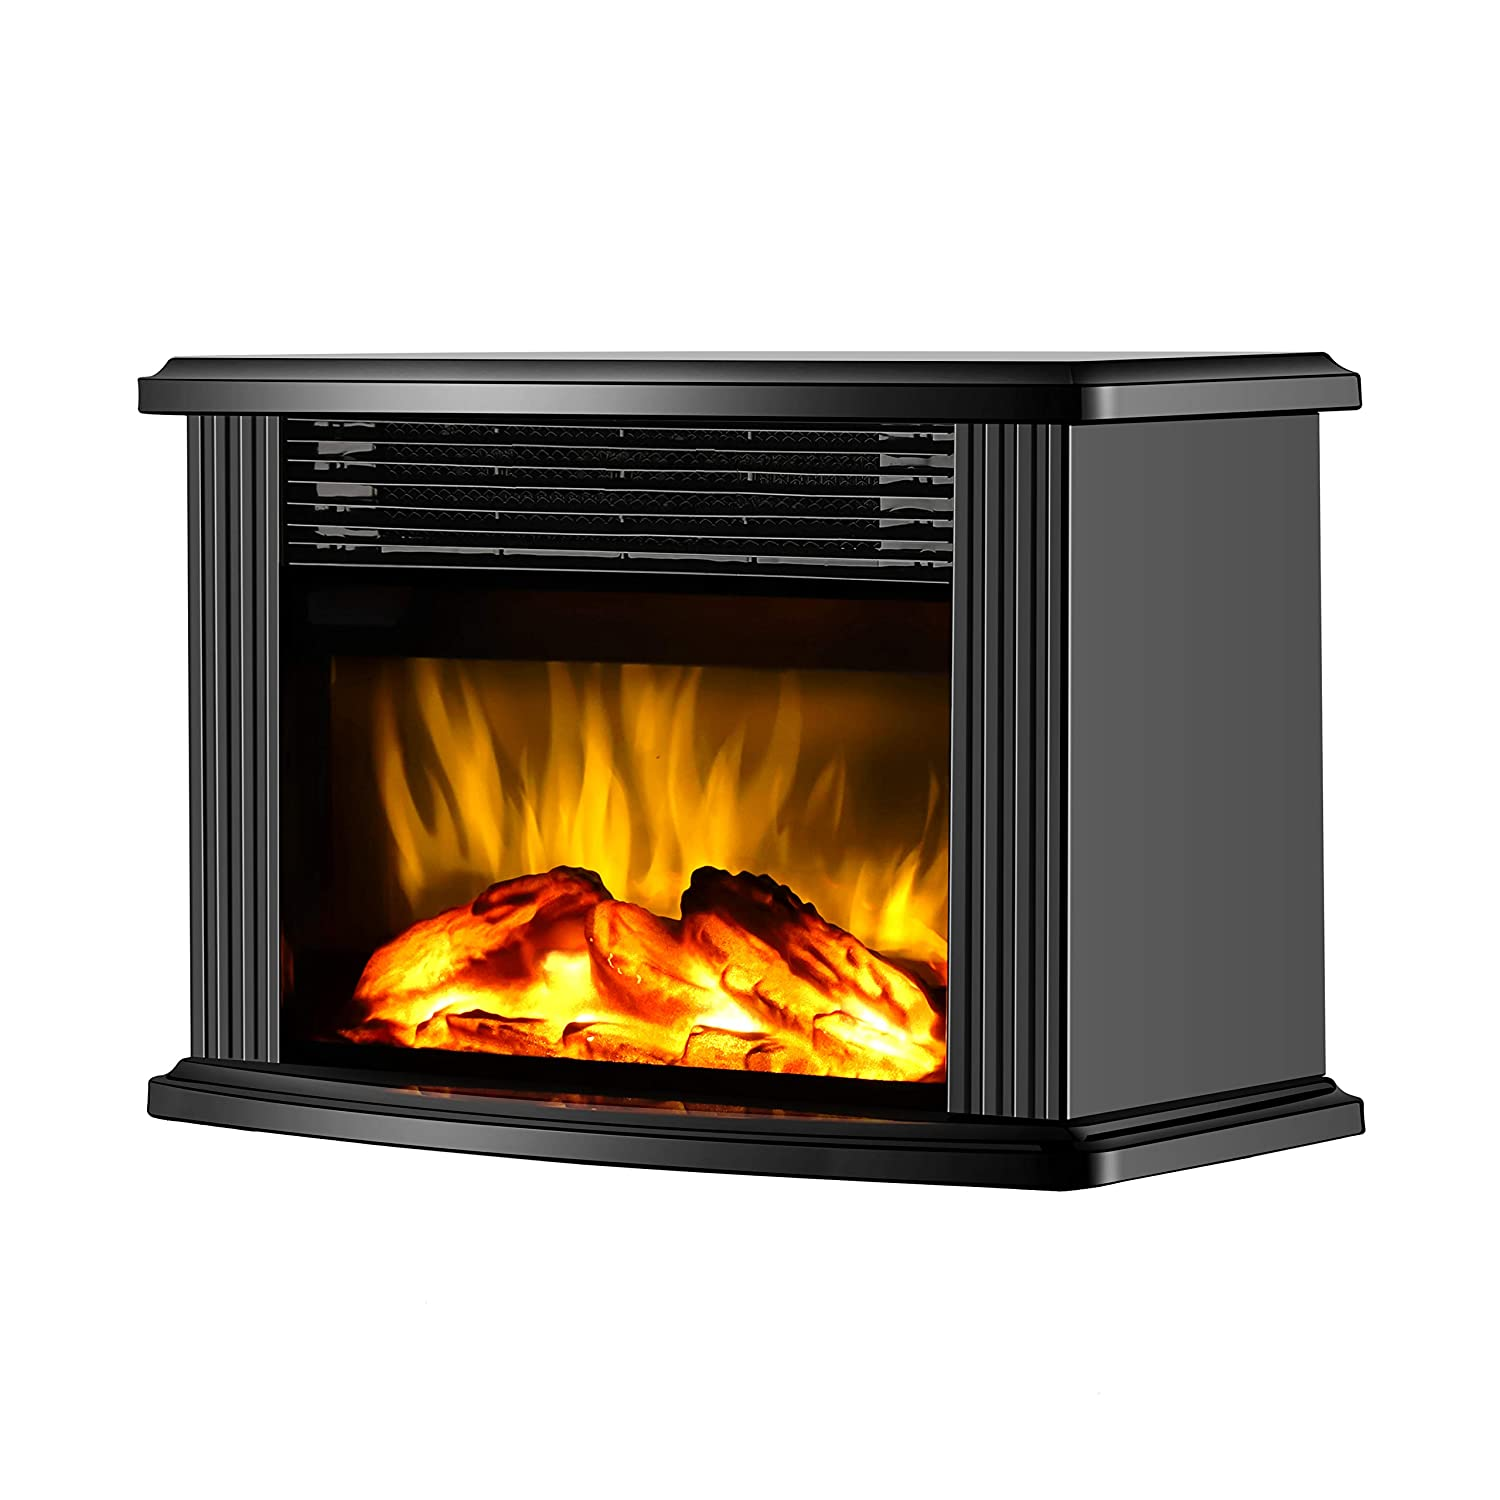 DONYER POWER 14-inch Mini Electric Fireplace Tabletop Portable Heater, 1500W, Black Metal Frame,Room Heater,Space Heater,Gift